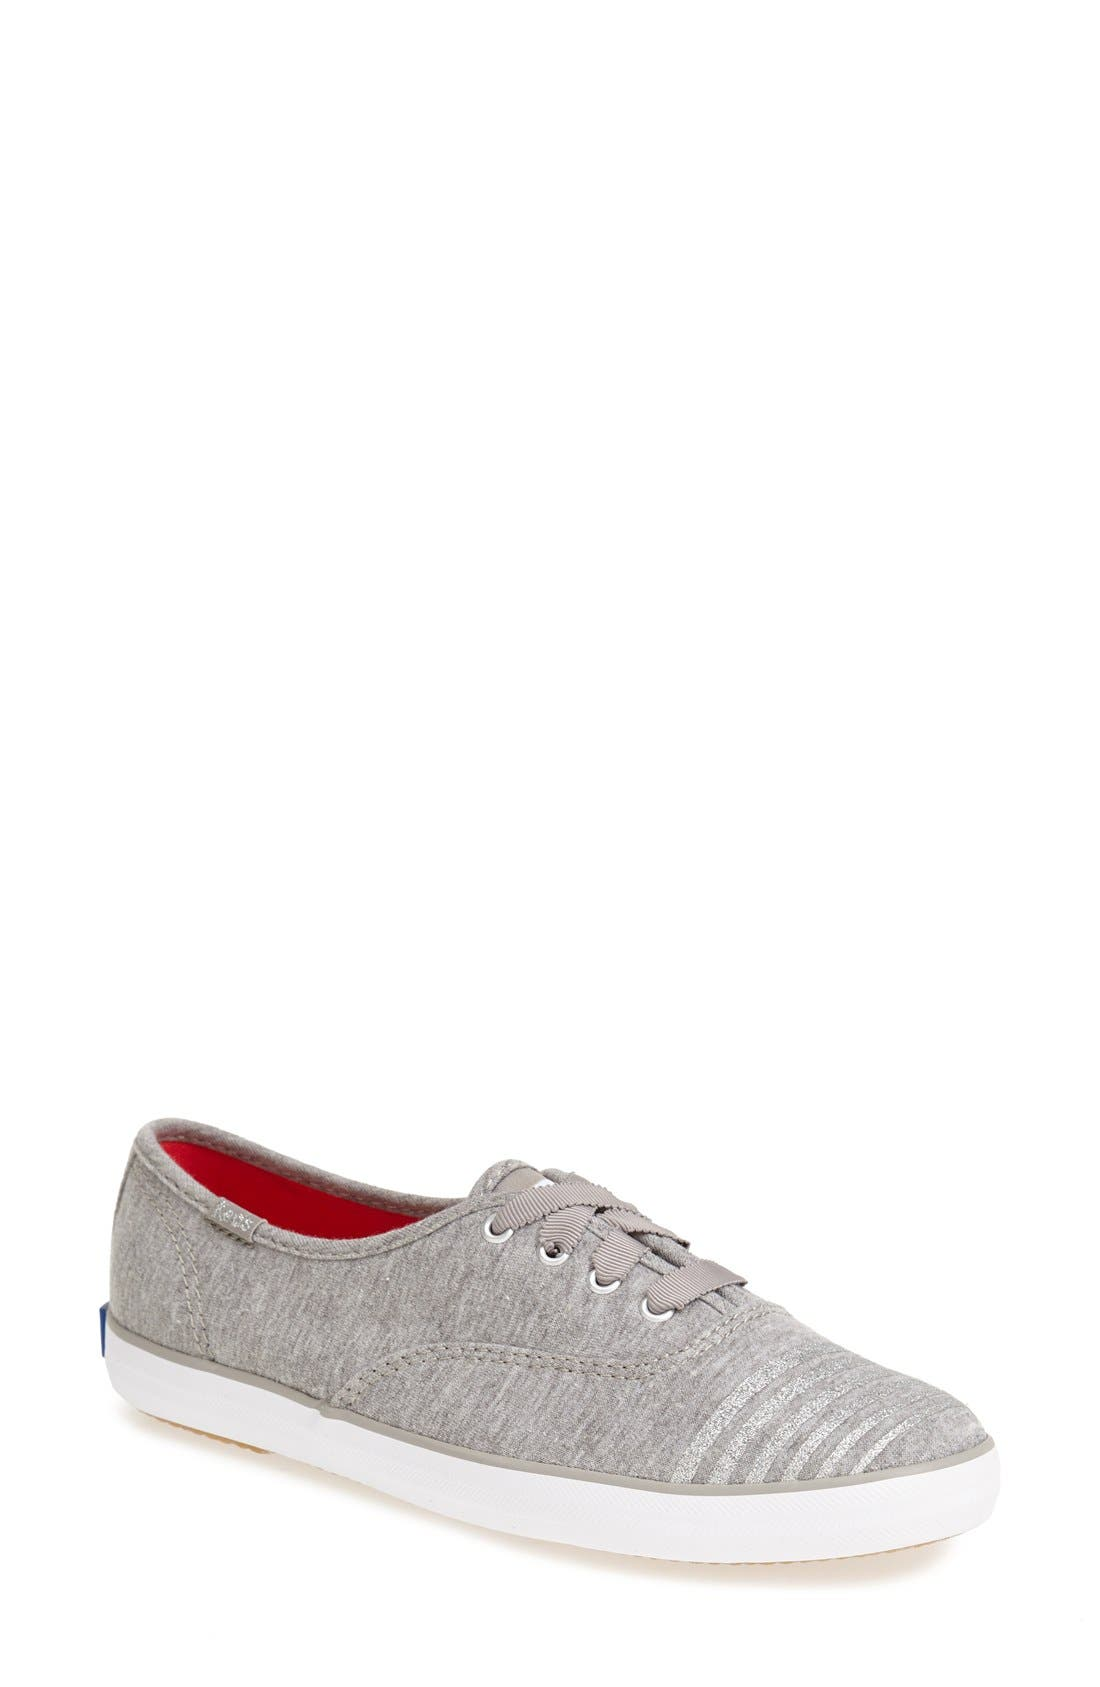 Alternate Image 1 Selected - Keds® 'Champion - Jersey Glitter' Sneaker (Women)